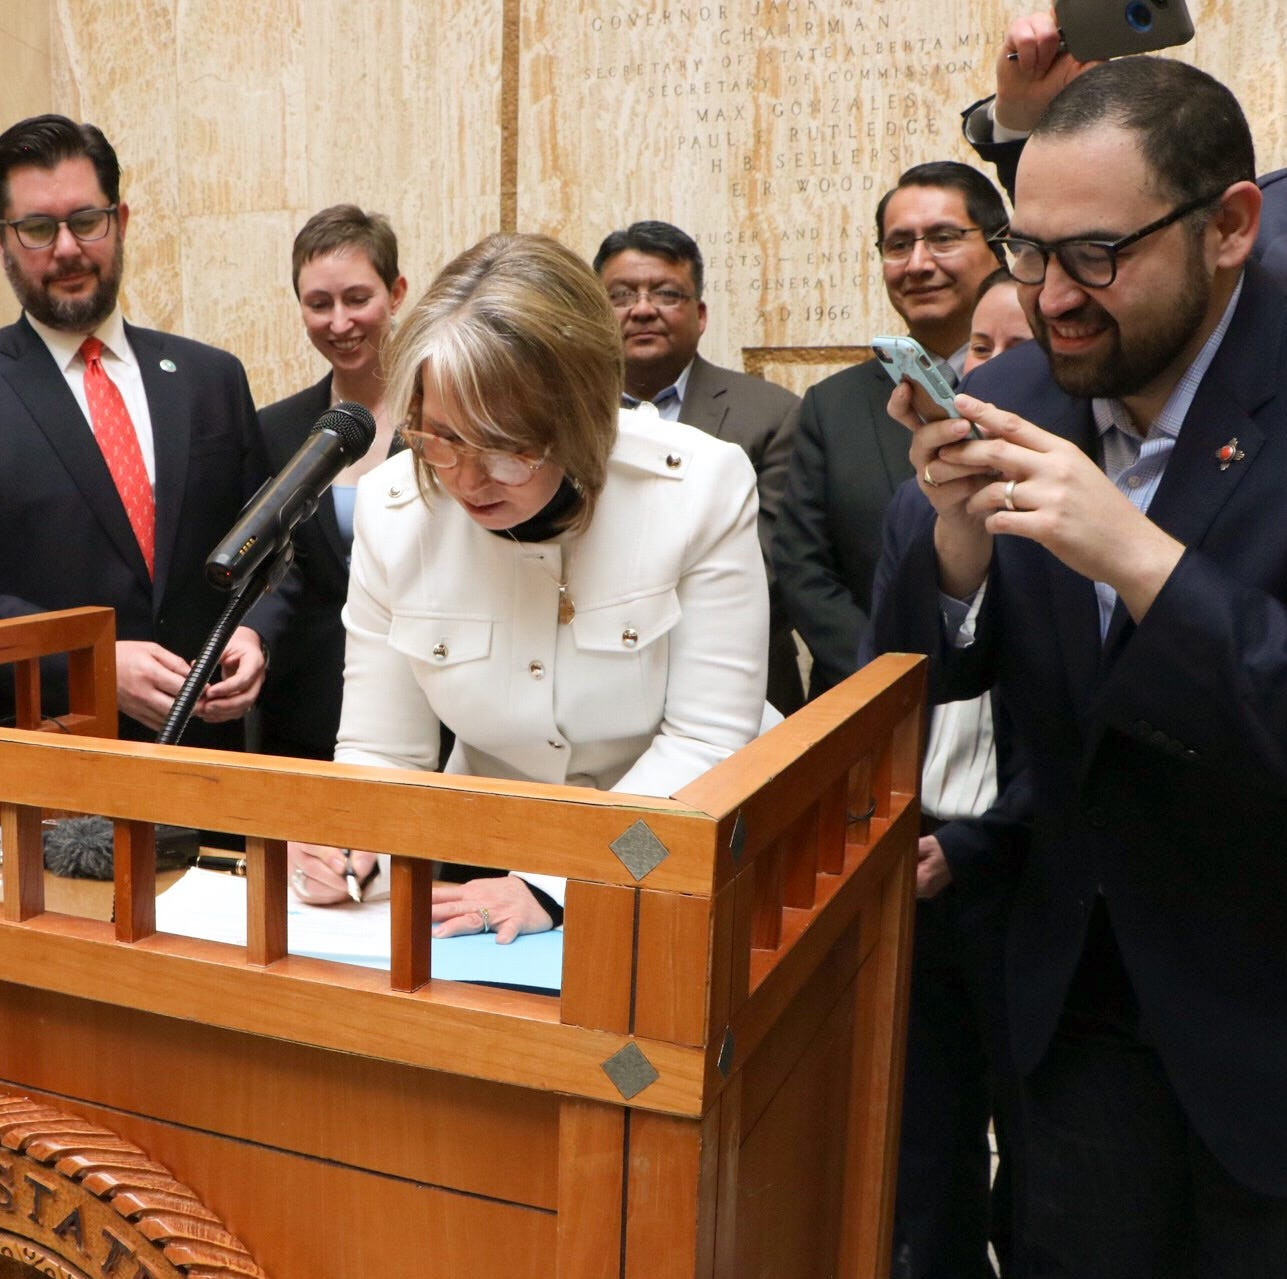 With a week left, here's the bills Governor Lujan Grisham is likely to sign